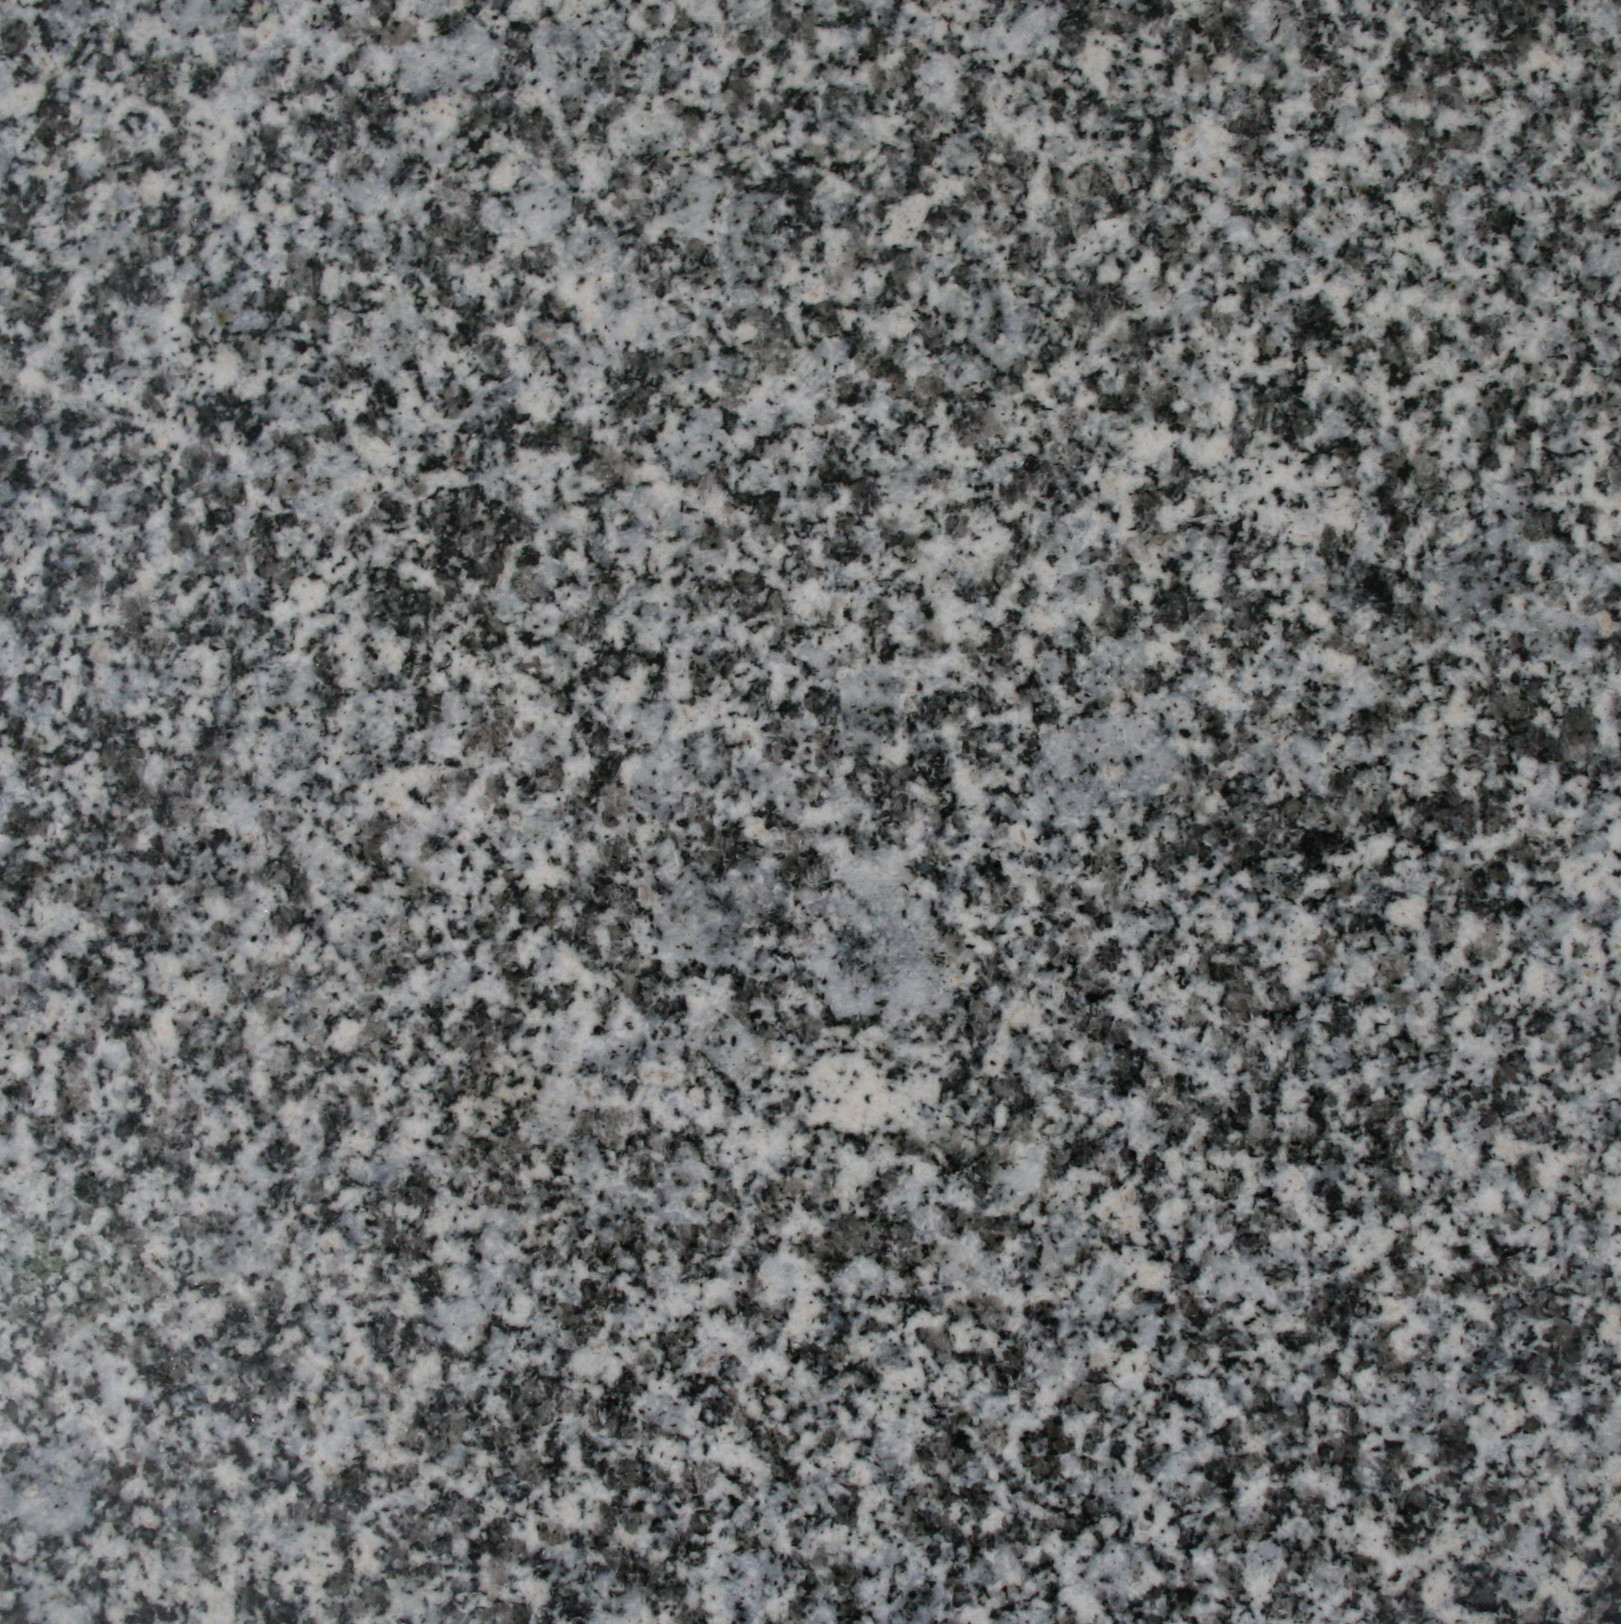 Hauzenberger granit wikiwand for Photo de granite